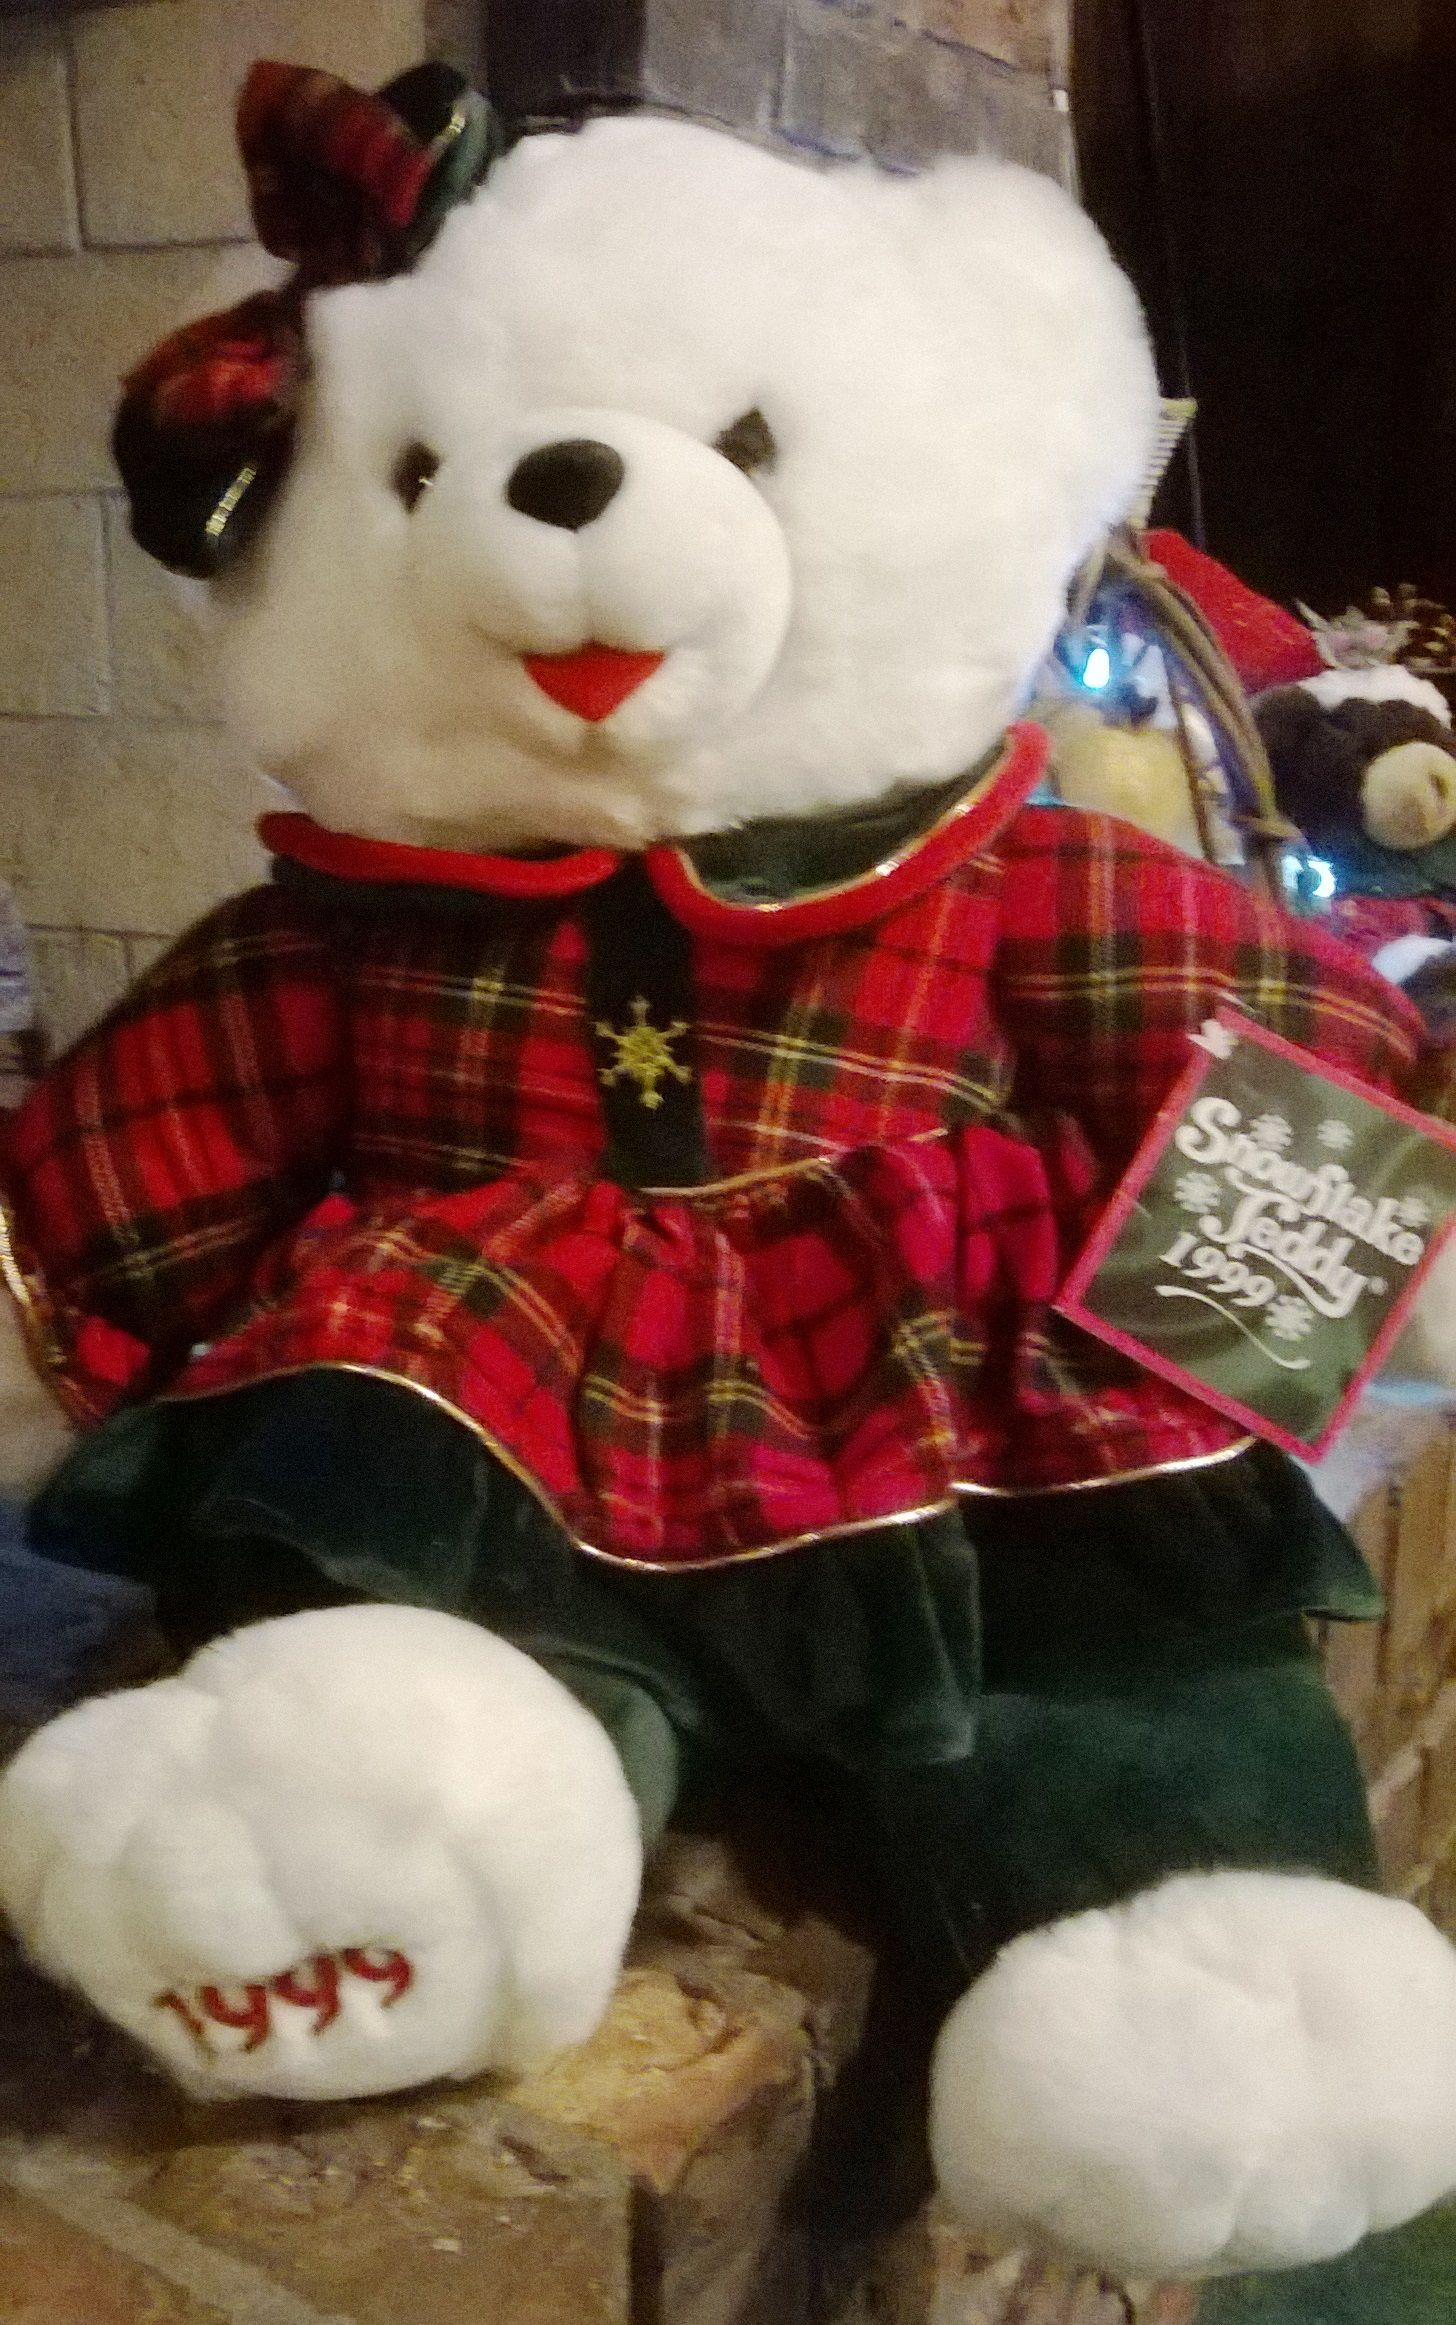 1999 Walmart Snowflake Teddy by DanDee Hello kitty plush